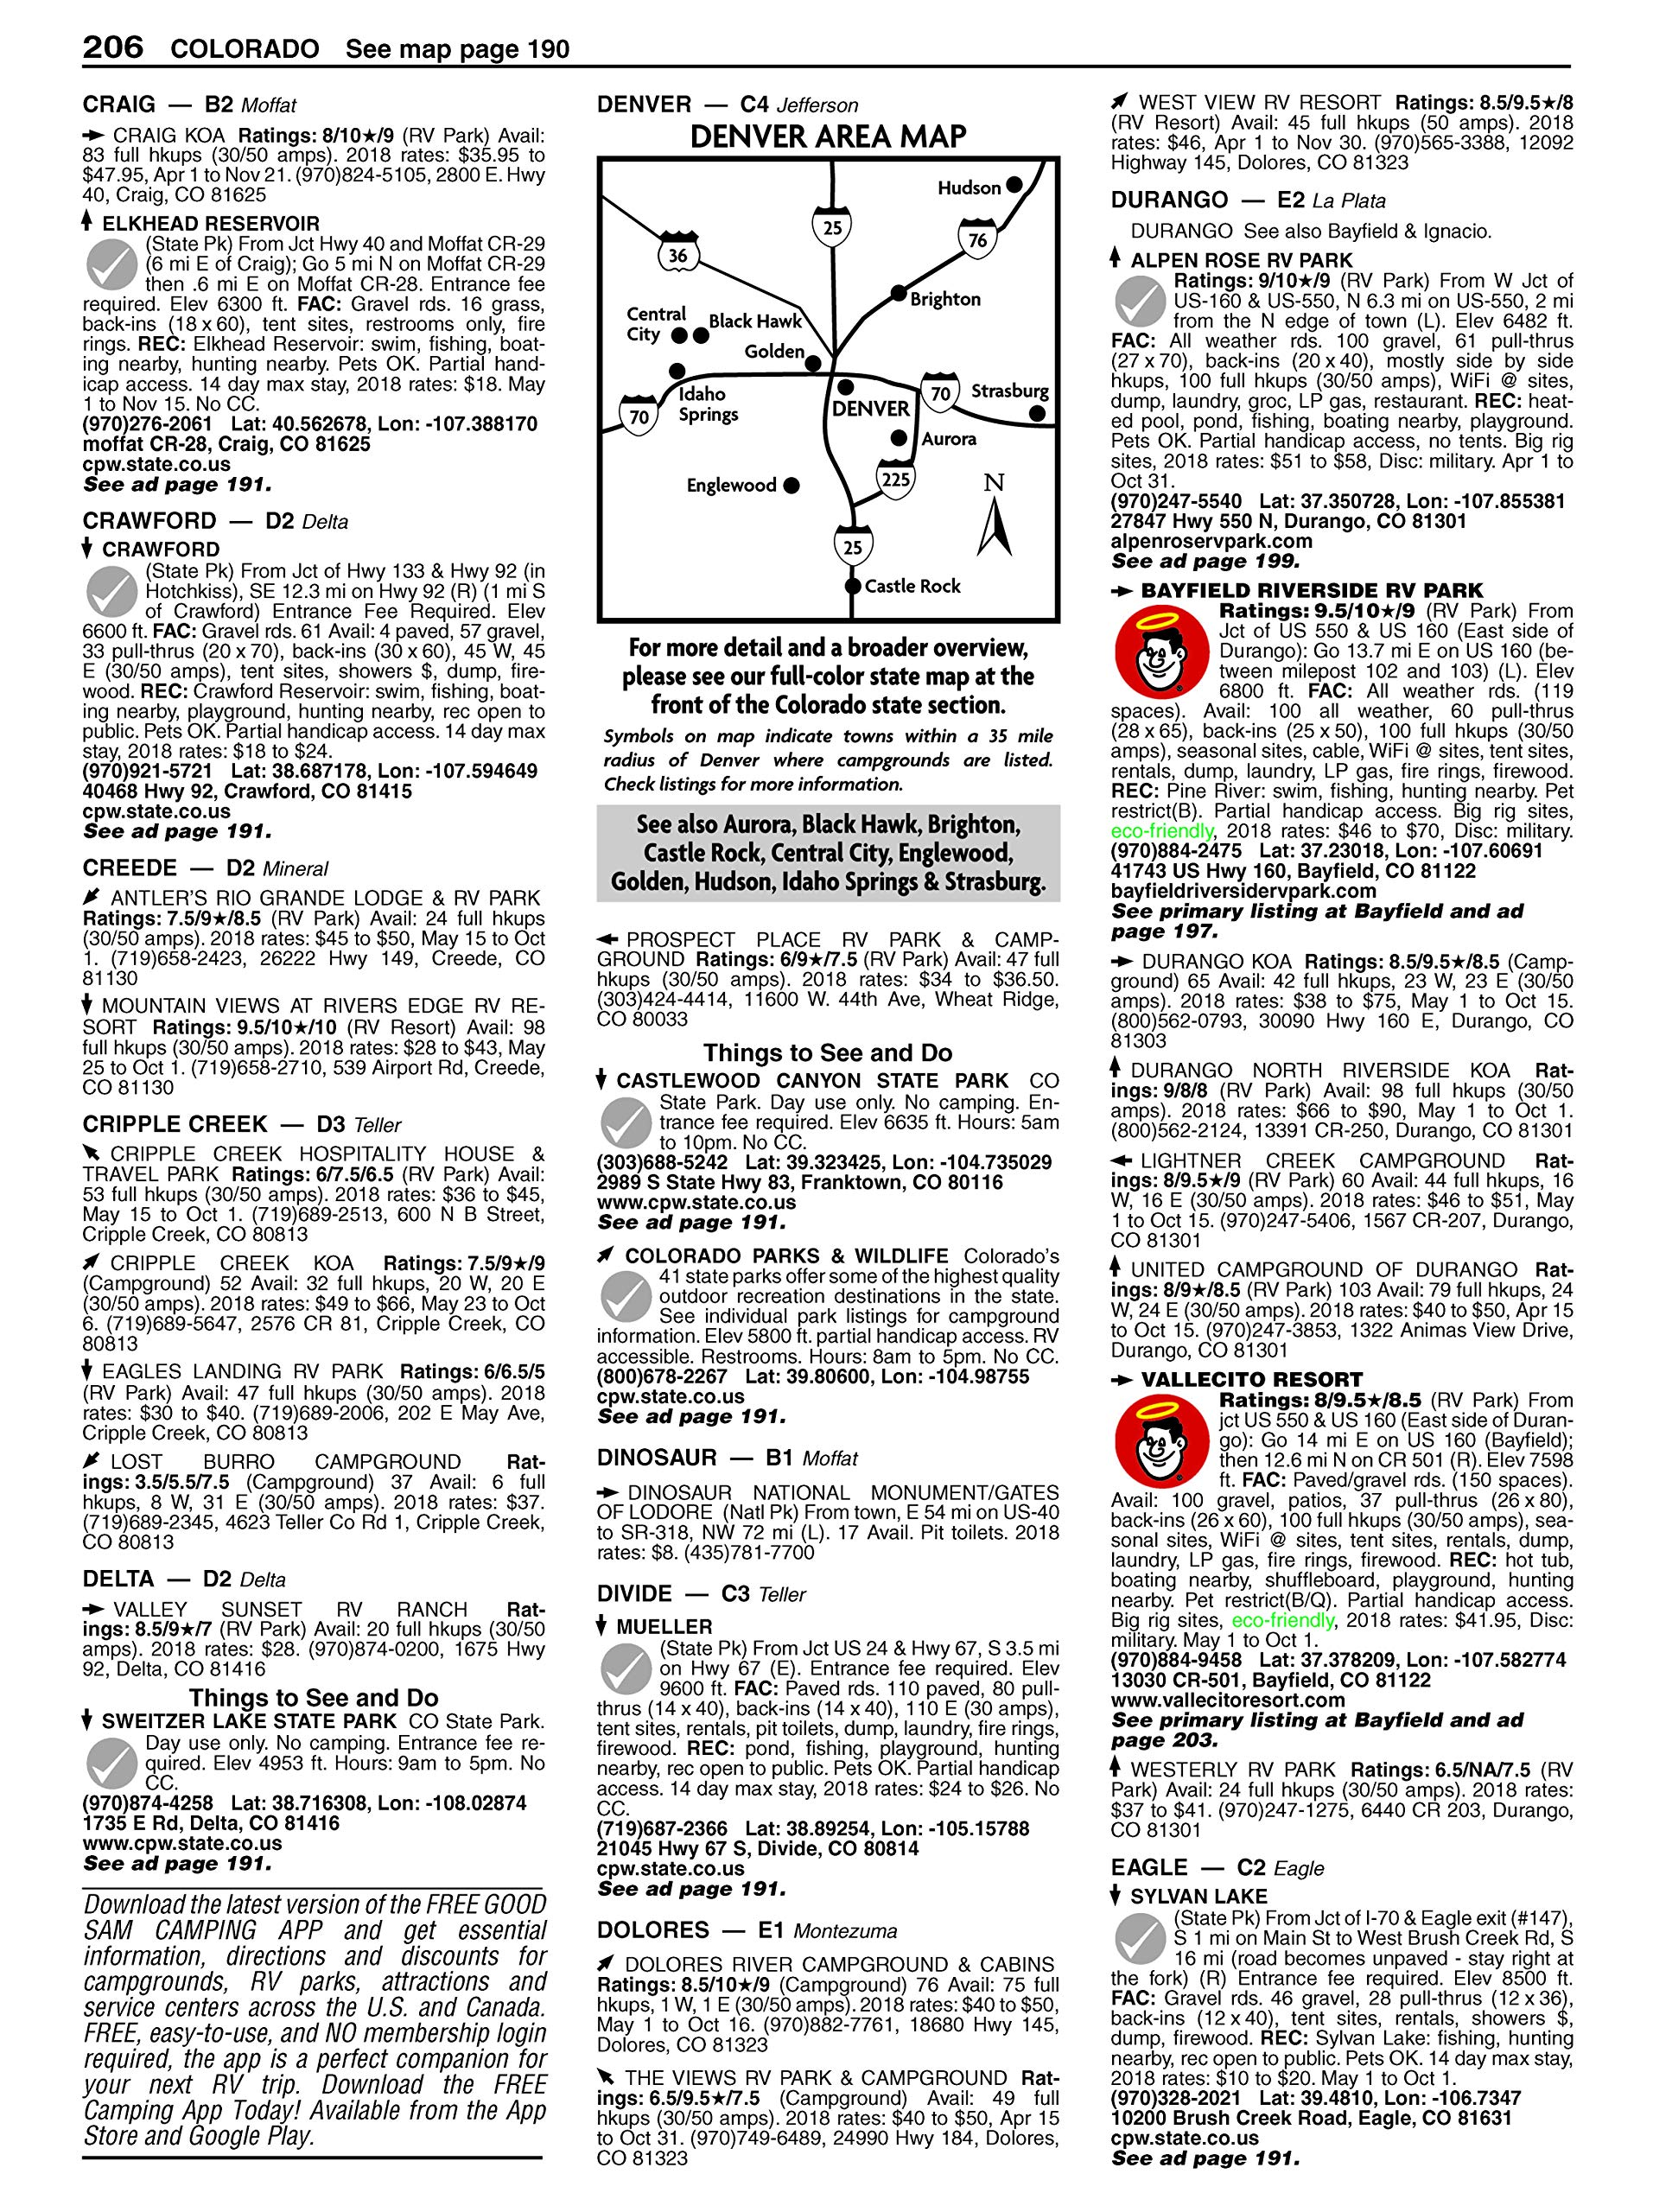 The 2020 Good Sam Guide Series for the RV & Outdoor ... Good Sam Map on seattle center map, bloomsbury map, christopher map, jake map, pacific science center map, green lake map, capitol hill map, beacon hill map, noah map, rockingham map, thomas map, nick map, paris map, pike place market map, vi map, olympic sculpture park map, dan map, space needle map, scott map, will map,